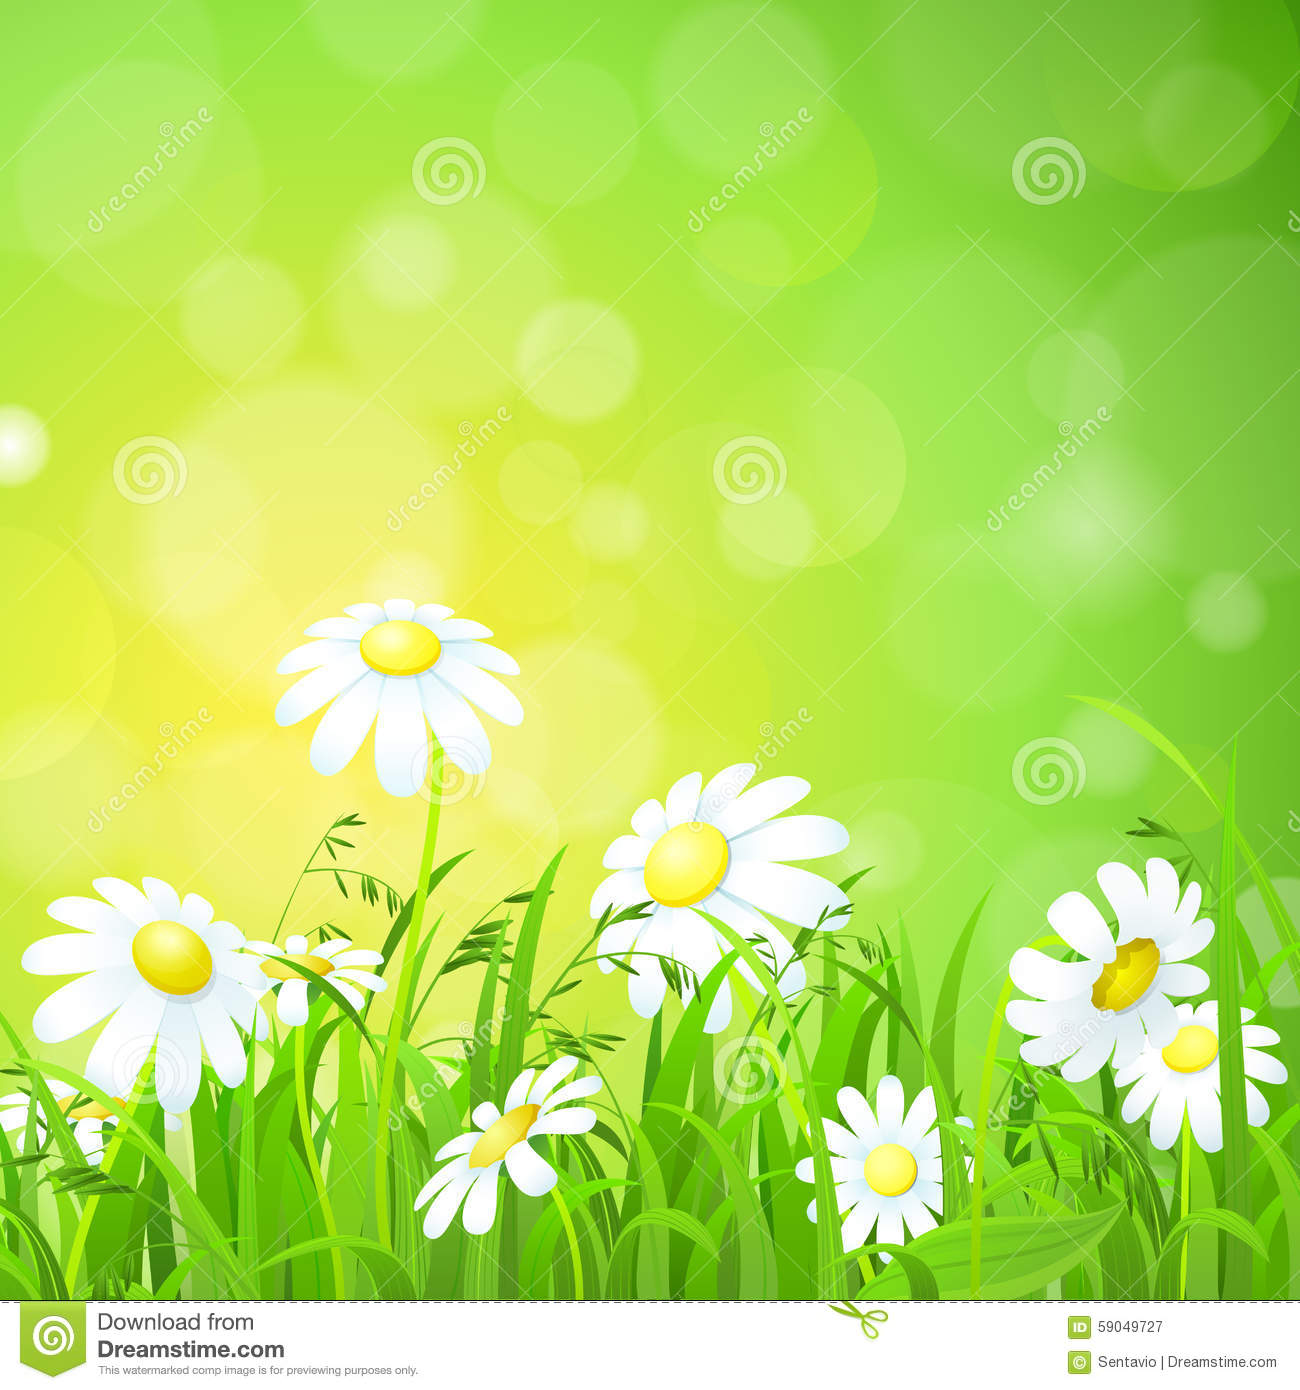 Shiny Grass Lawn And Chamomile Flat Vector Background